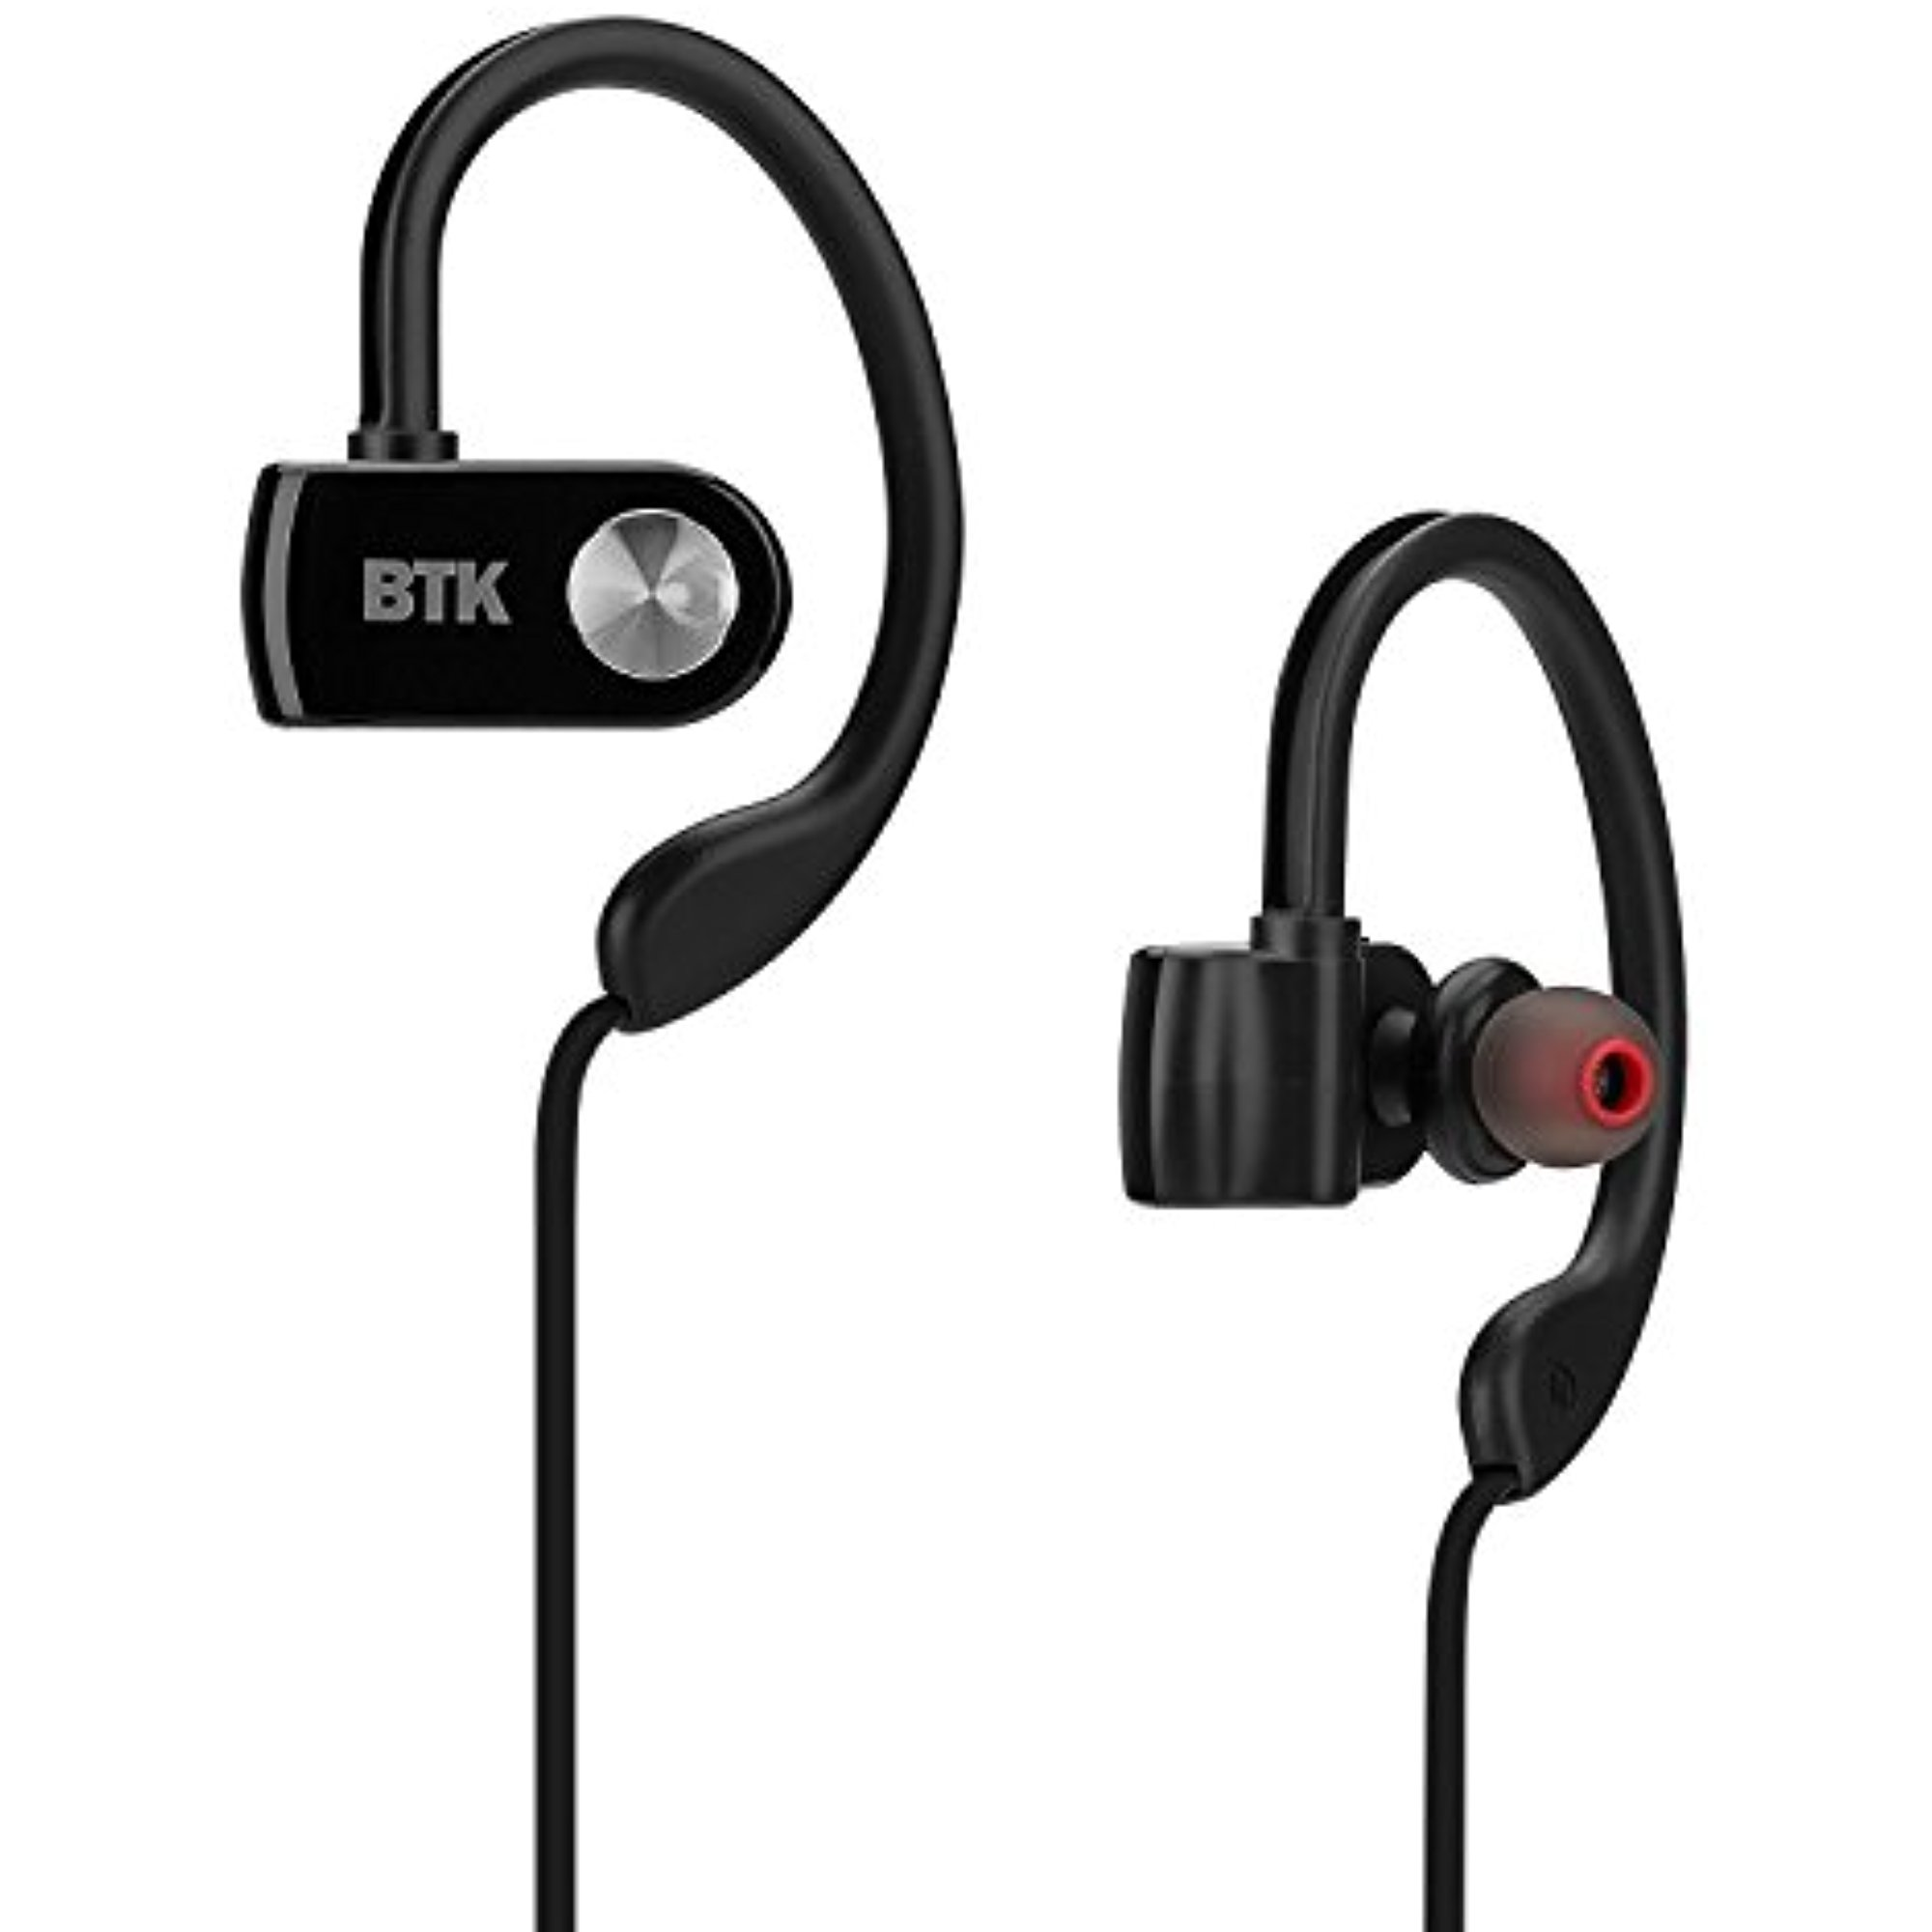 Bluetooth Headphones Sport Running Wireless Noise Cancelling Headphones In Ear Earbuds with Mic and Apt-X Ear Hook for Samsung iPhone Mobile Phones (Black)